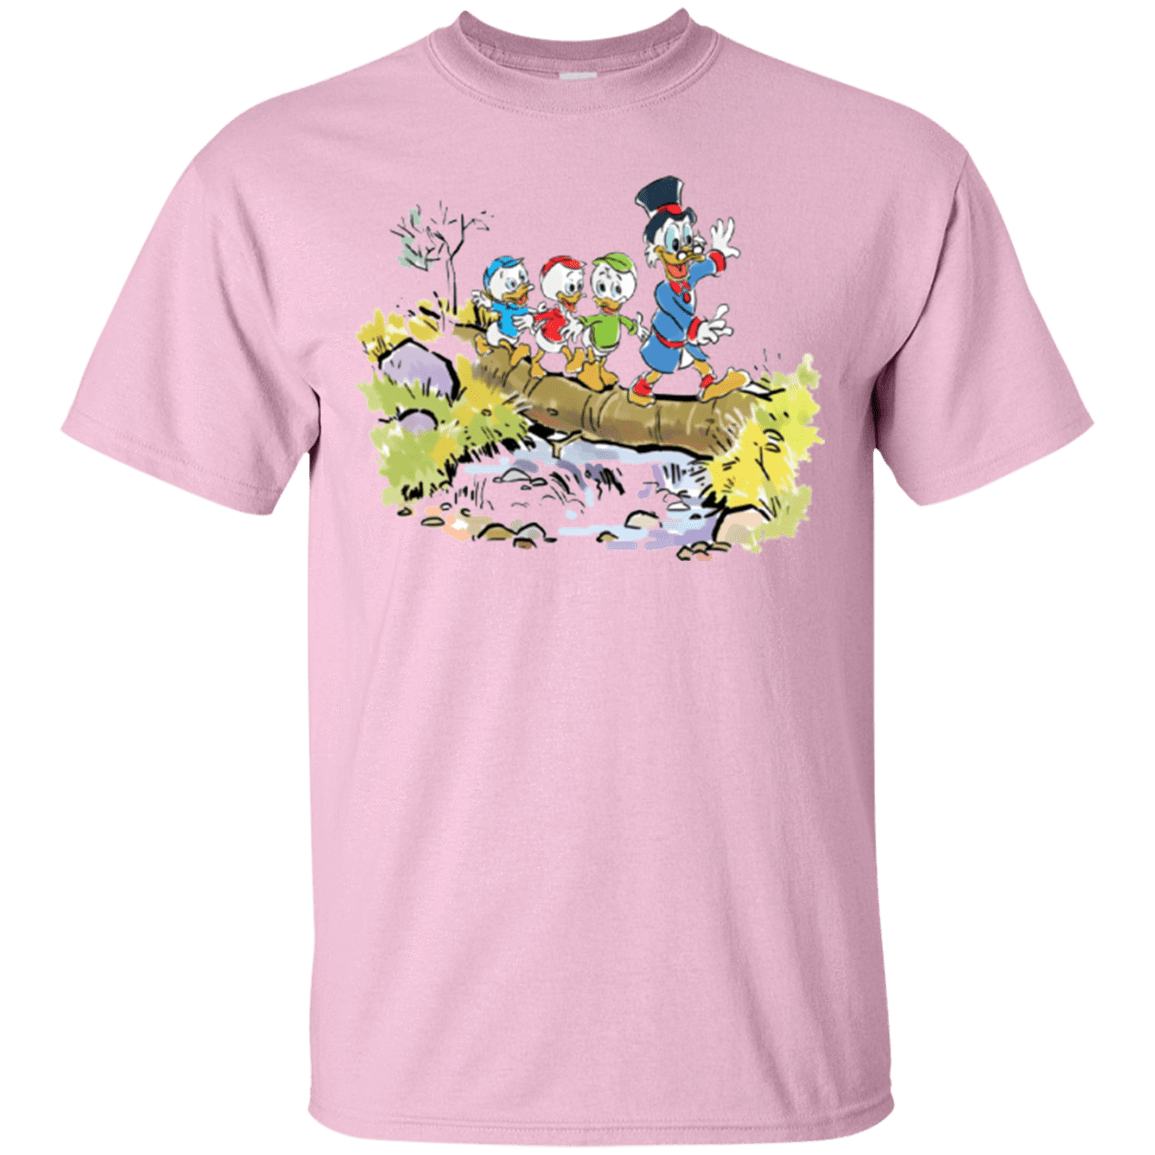 Looking for Adventure T-Shirt